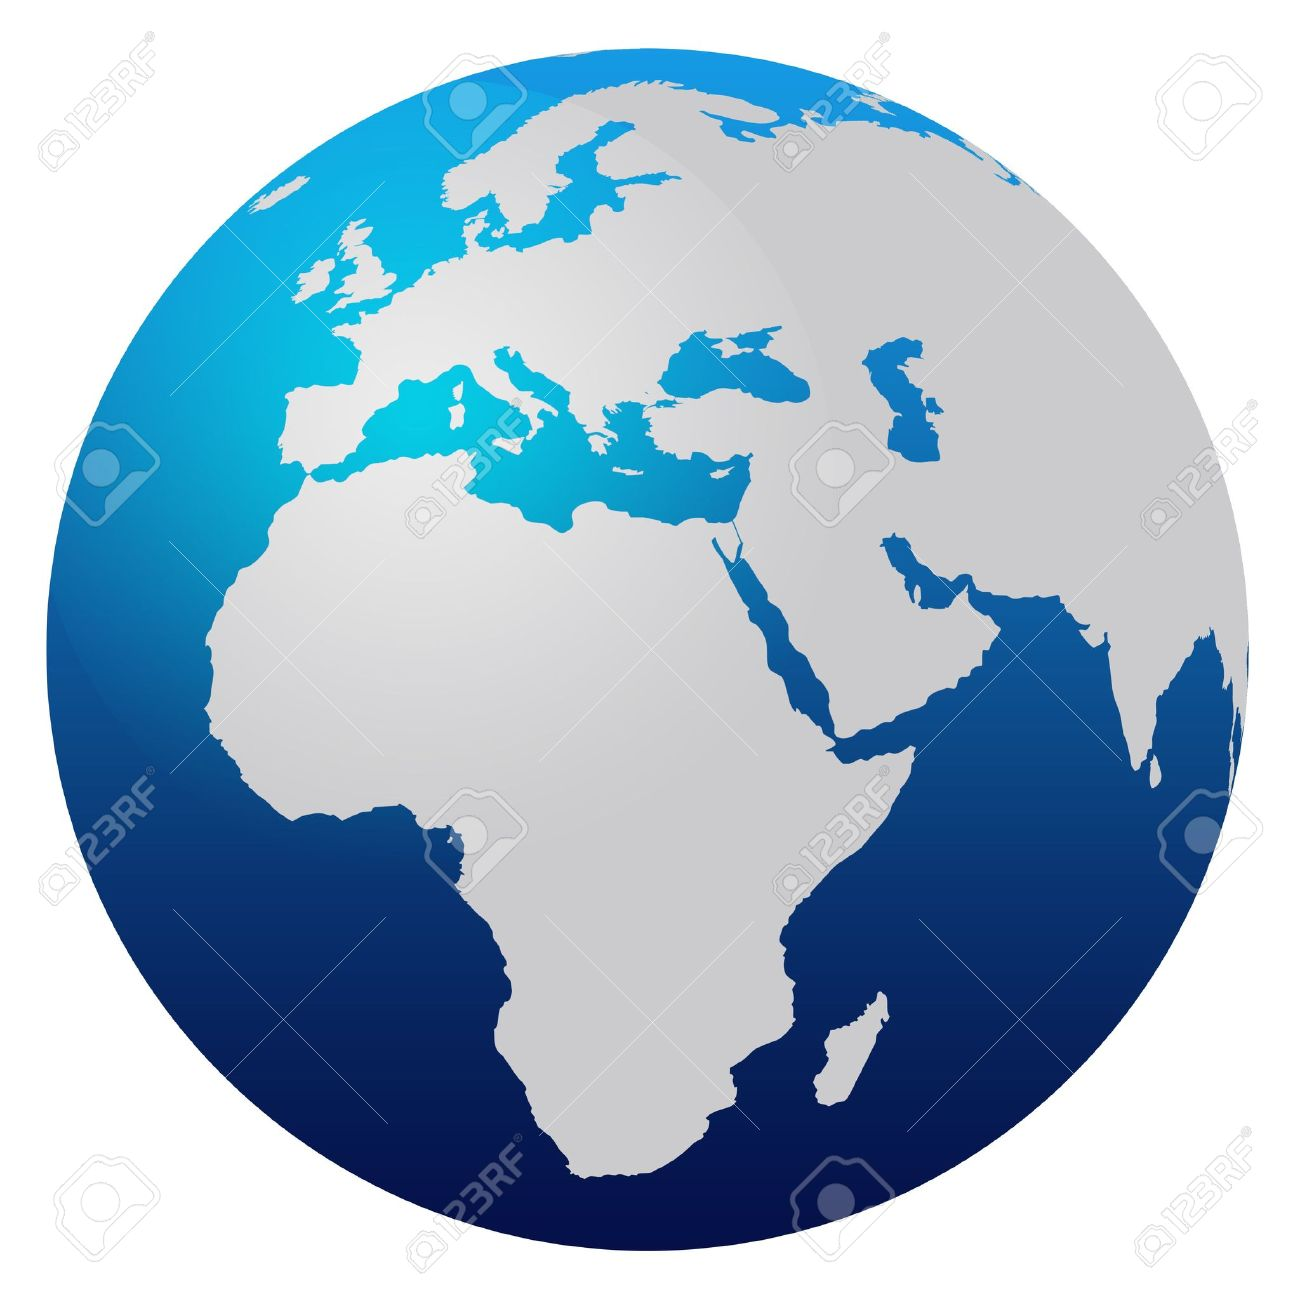 World Map Blue Globe Europe And Africa Photo Picture And – Globe Map of Europe